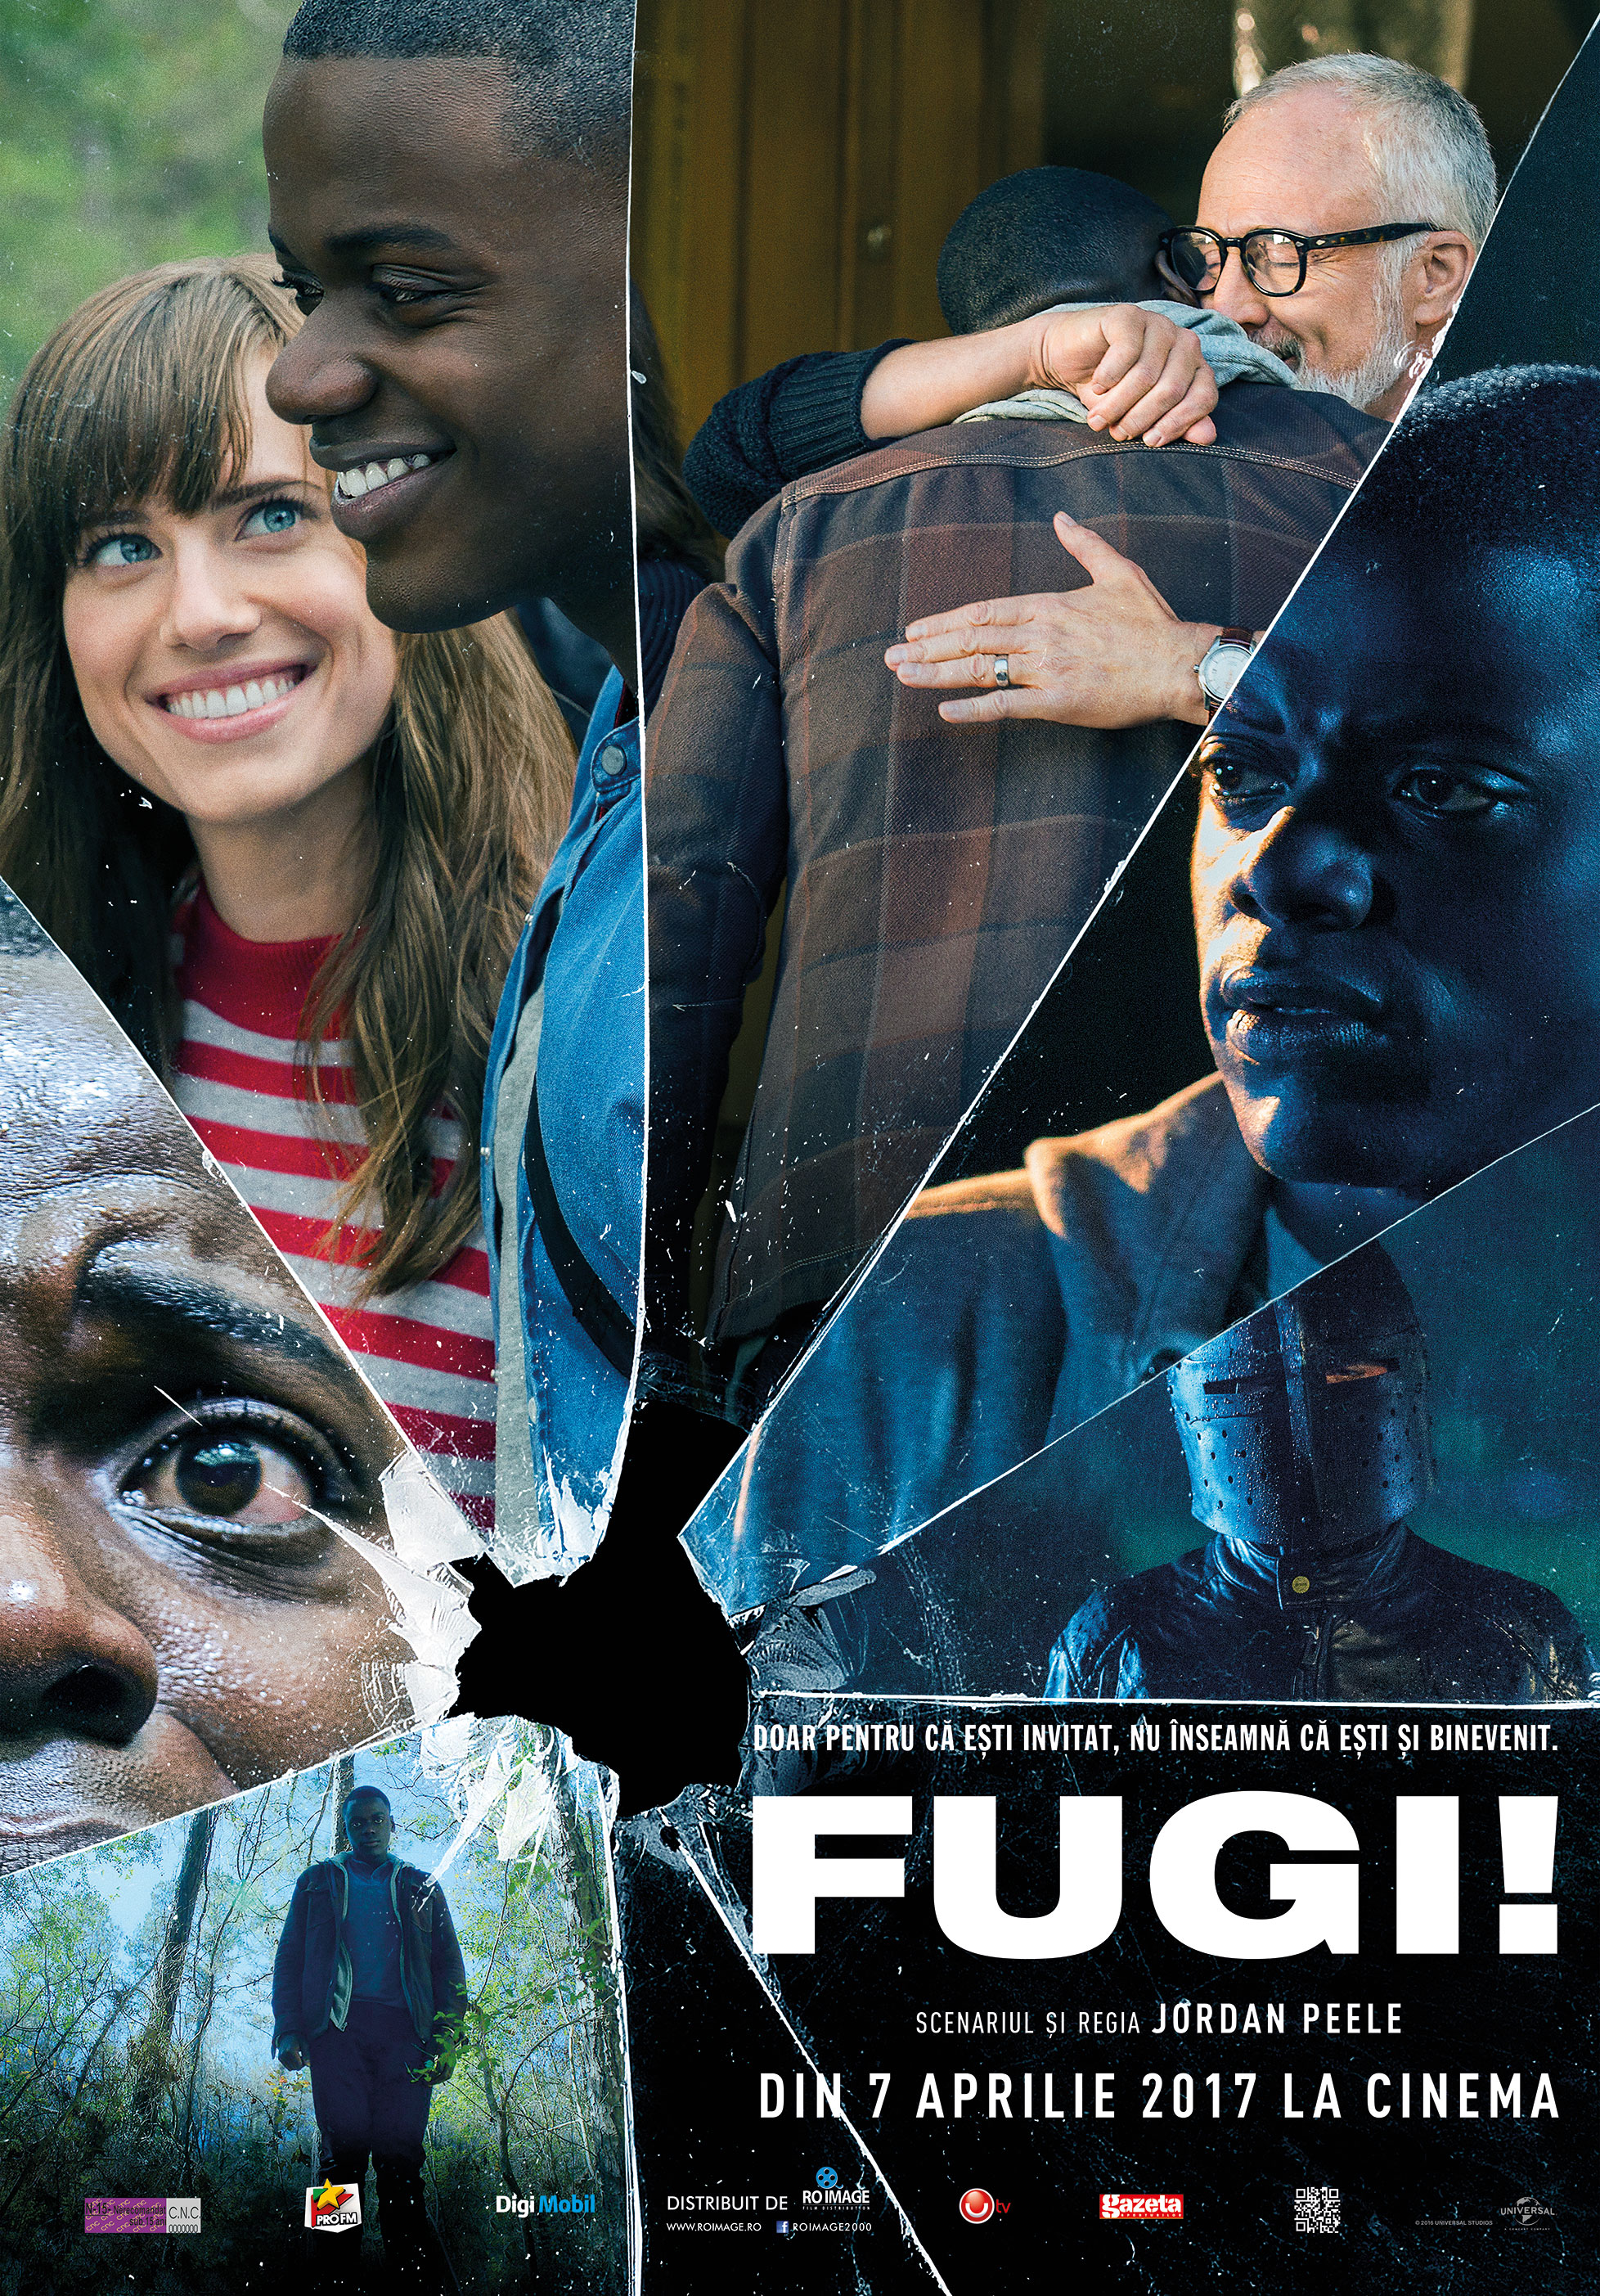 Get Out (2017) Fugi! Get-out-369411l